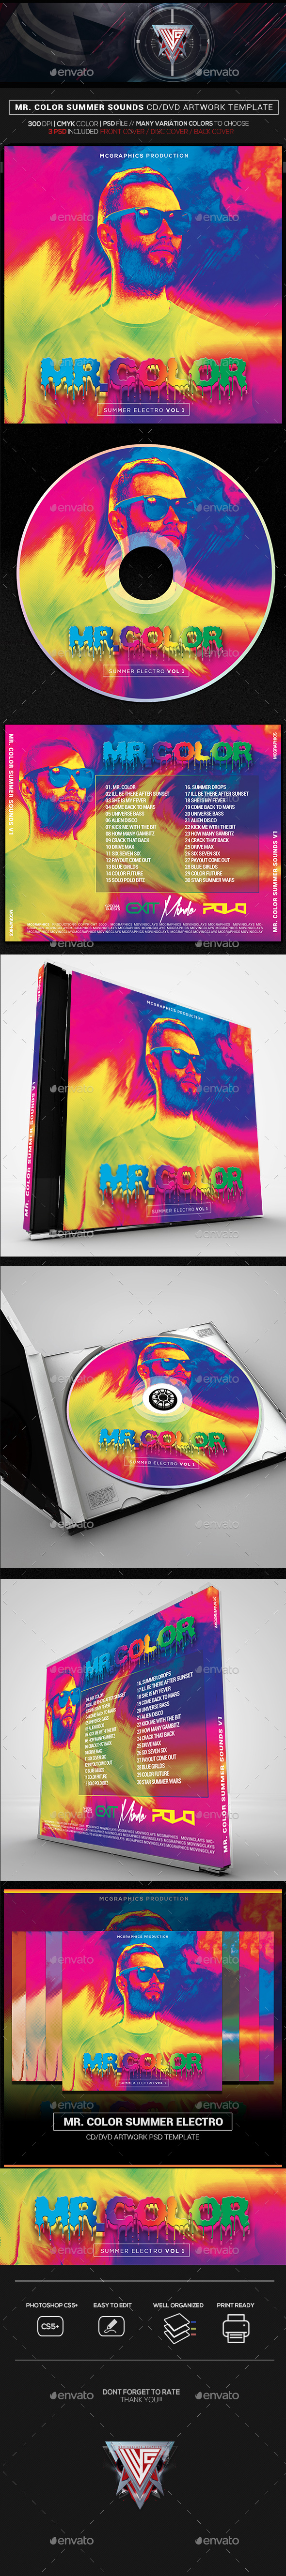 Mr. Color Summer Electro CD/DVD Template - CD & DVD Artwork Print Templates